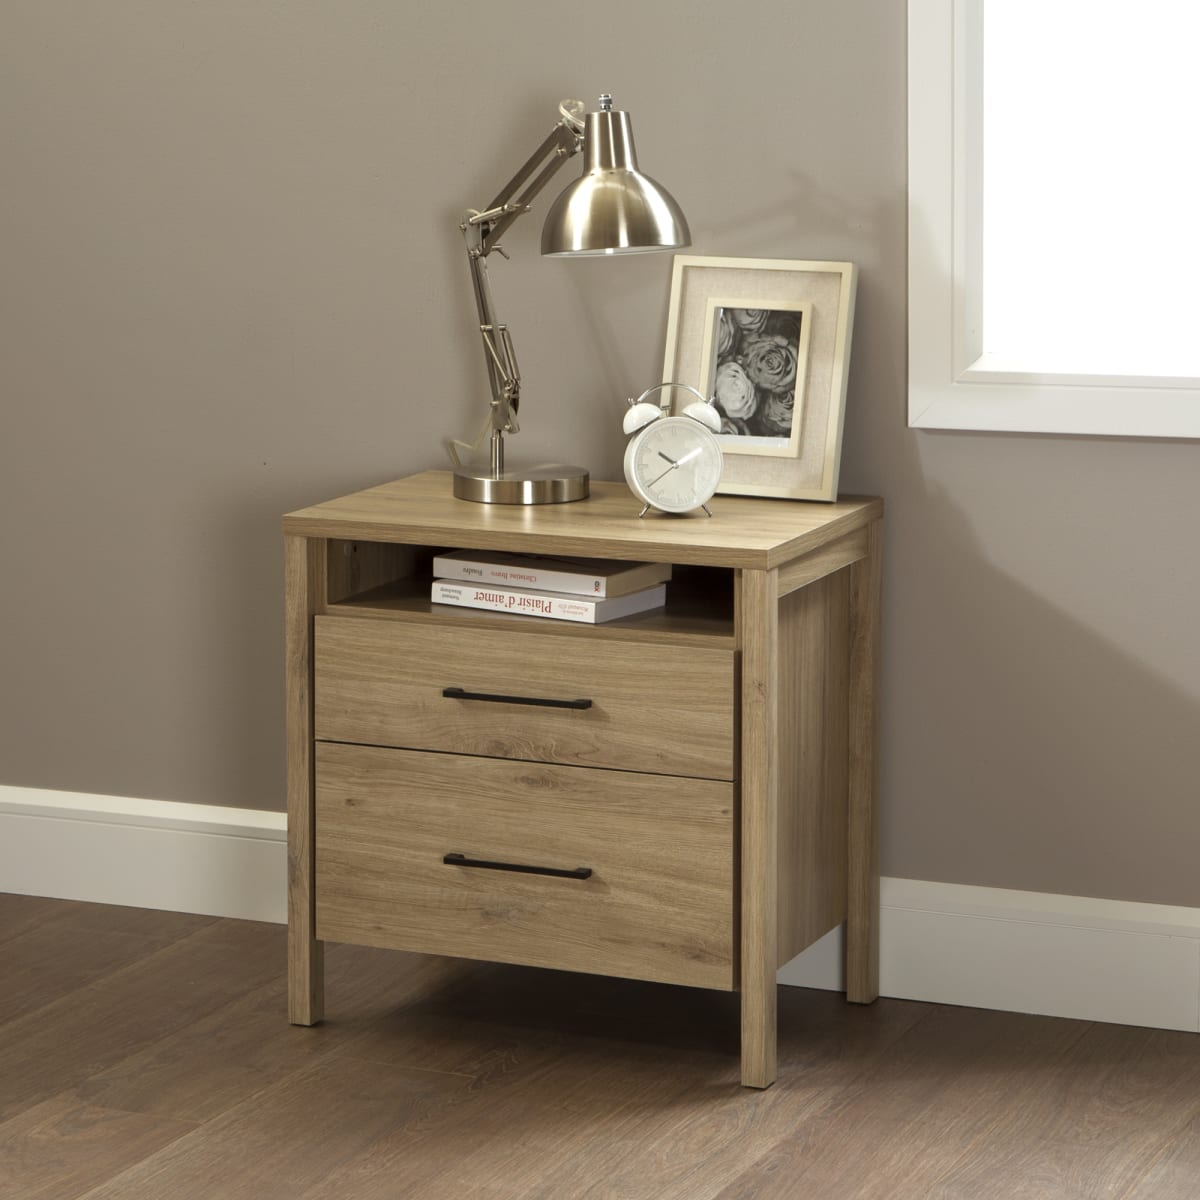 Gravity 2 Drawer Nightstand Nightstand Master Bedroom Furniture Products South Shore Furniture Us Furniture For Sale Designed And Manufactured In North America